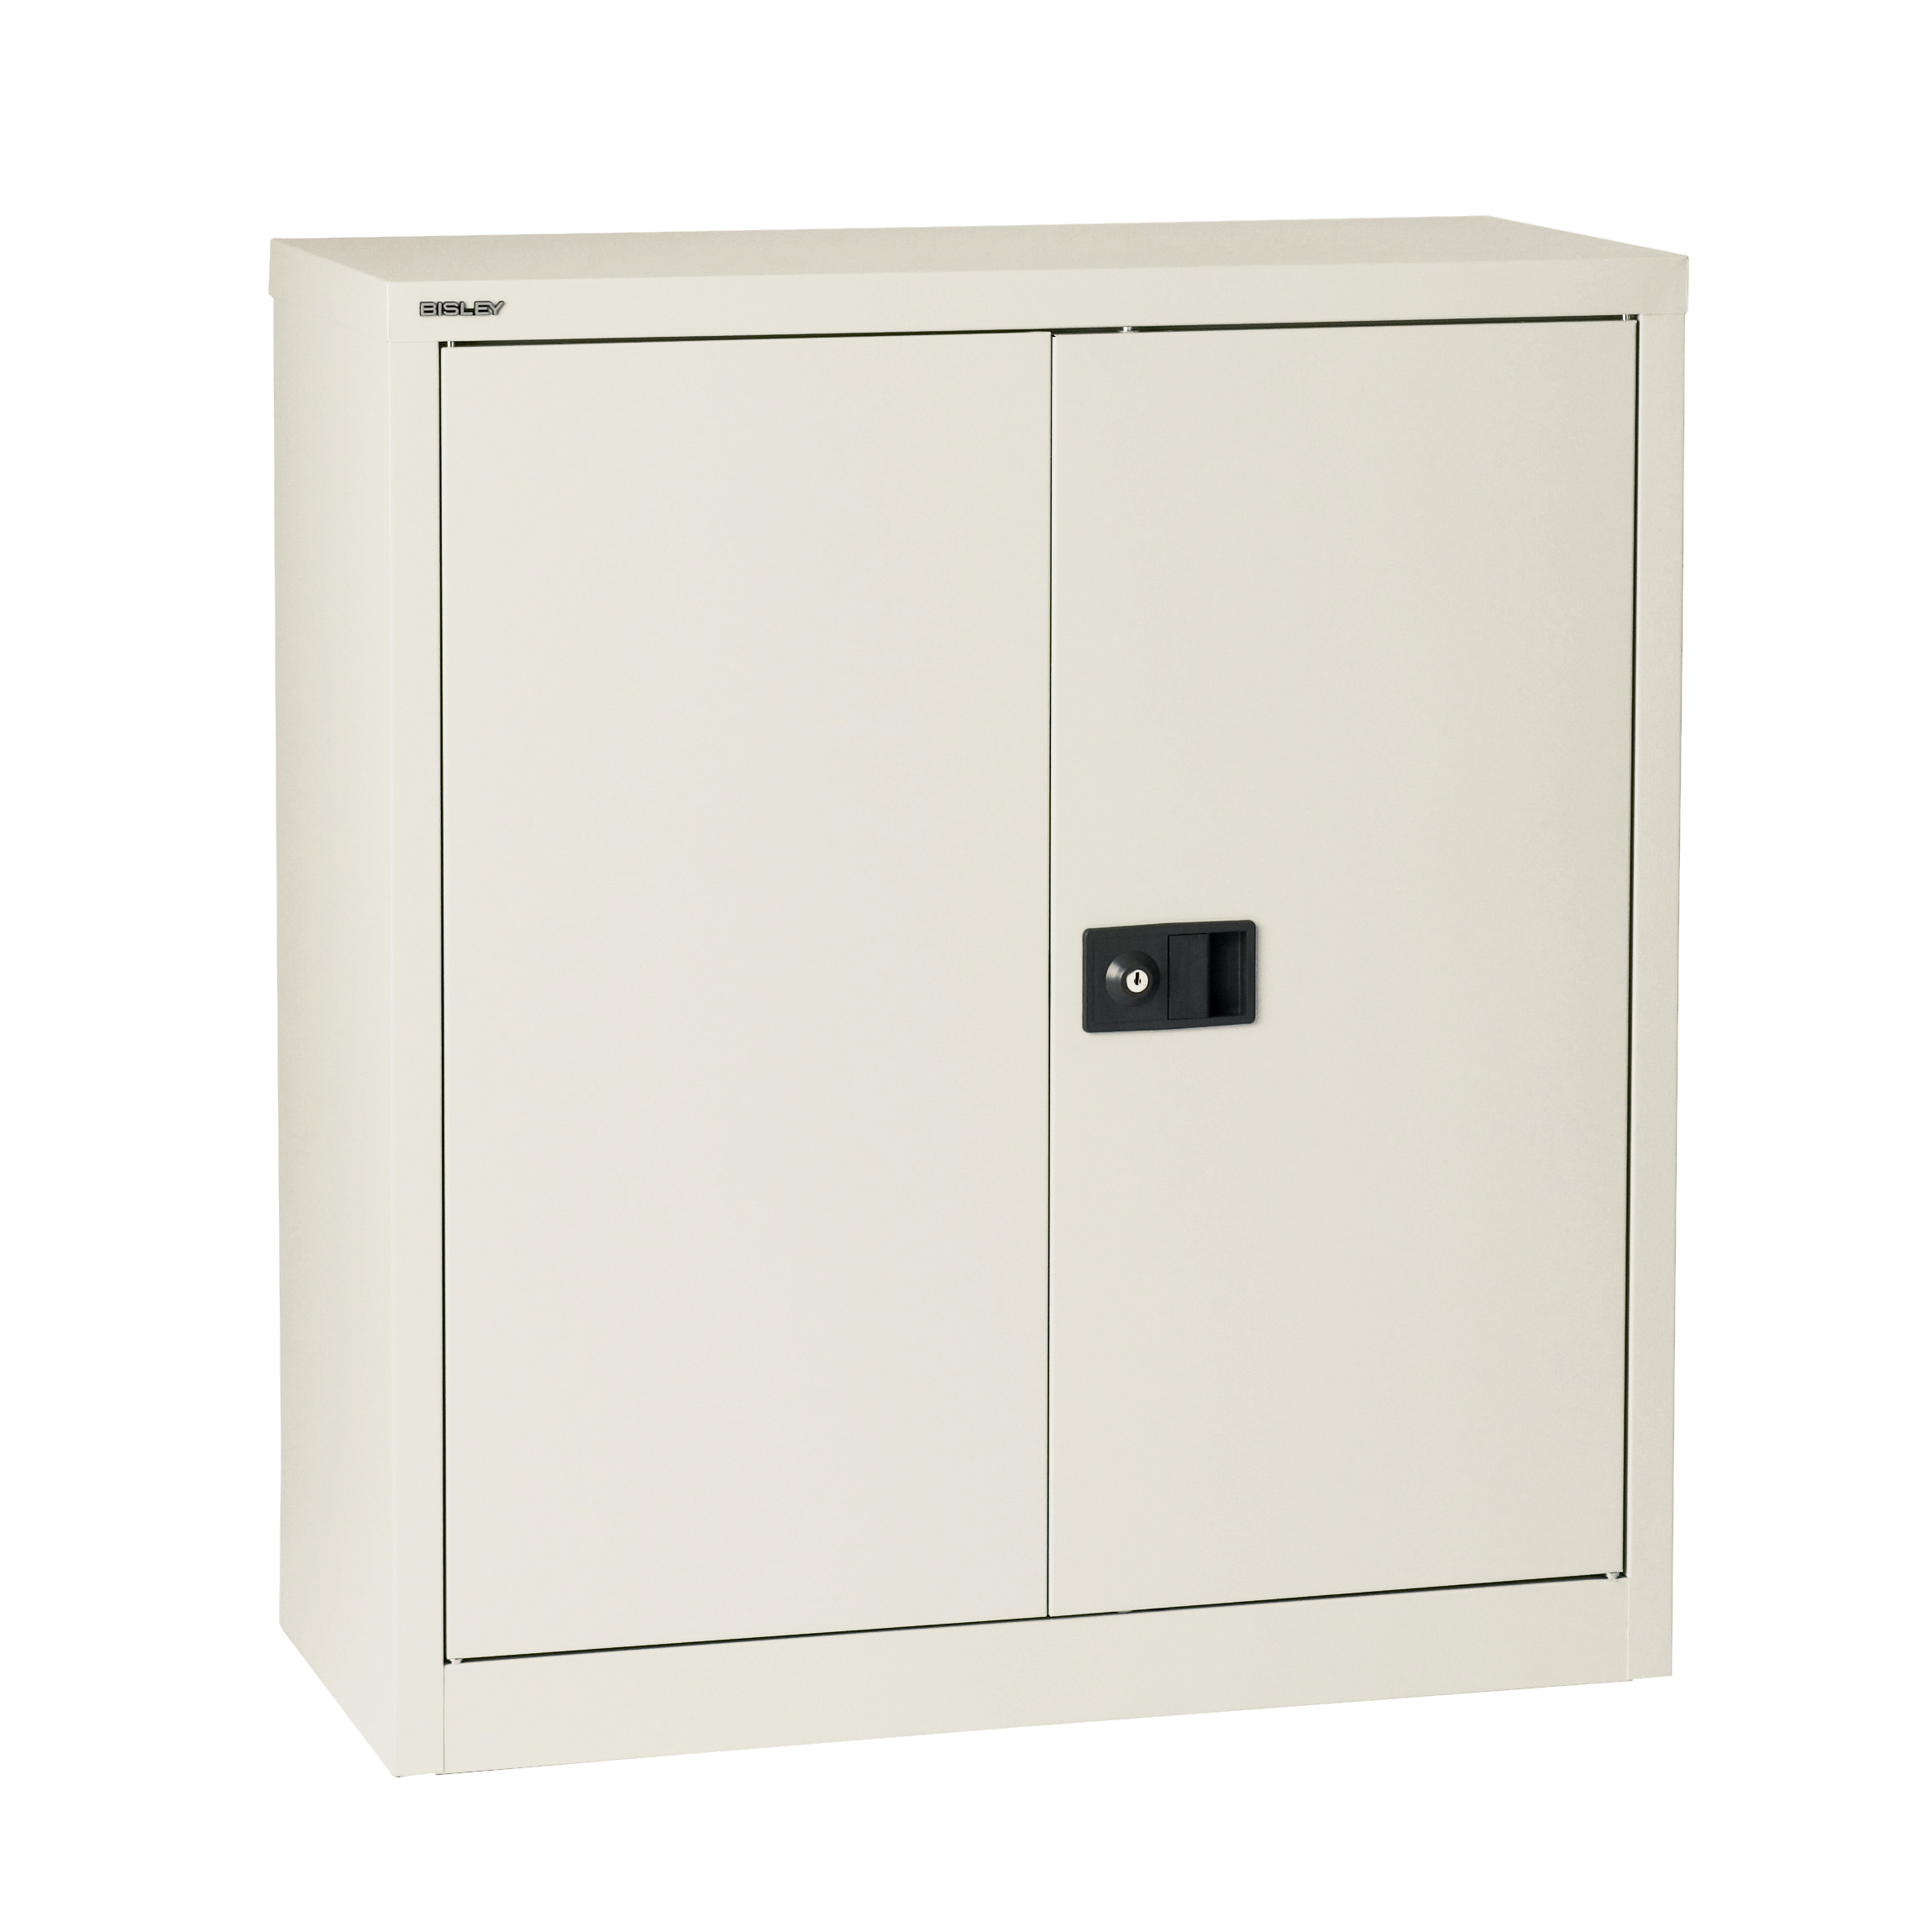 Storage cabinets Trexus Stationery Cupboard 1 Shelf 914x400x1000mm Chalk White Ref E402A01-ab9